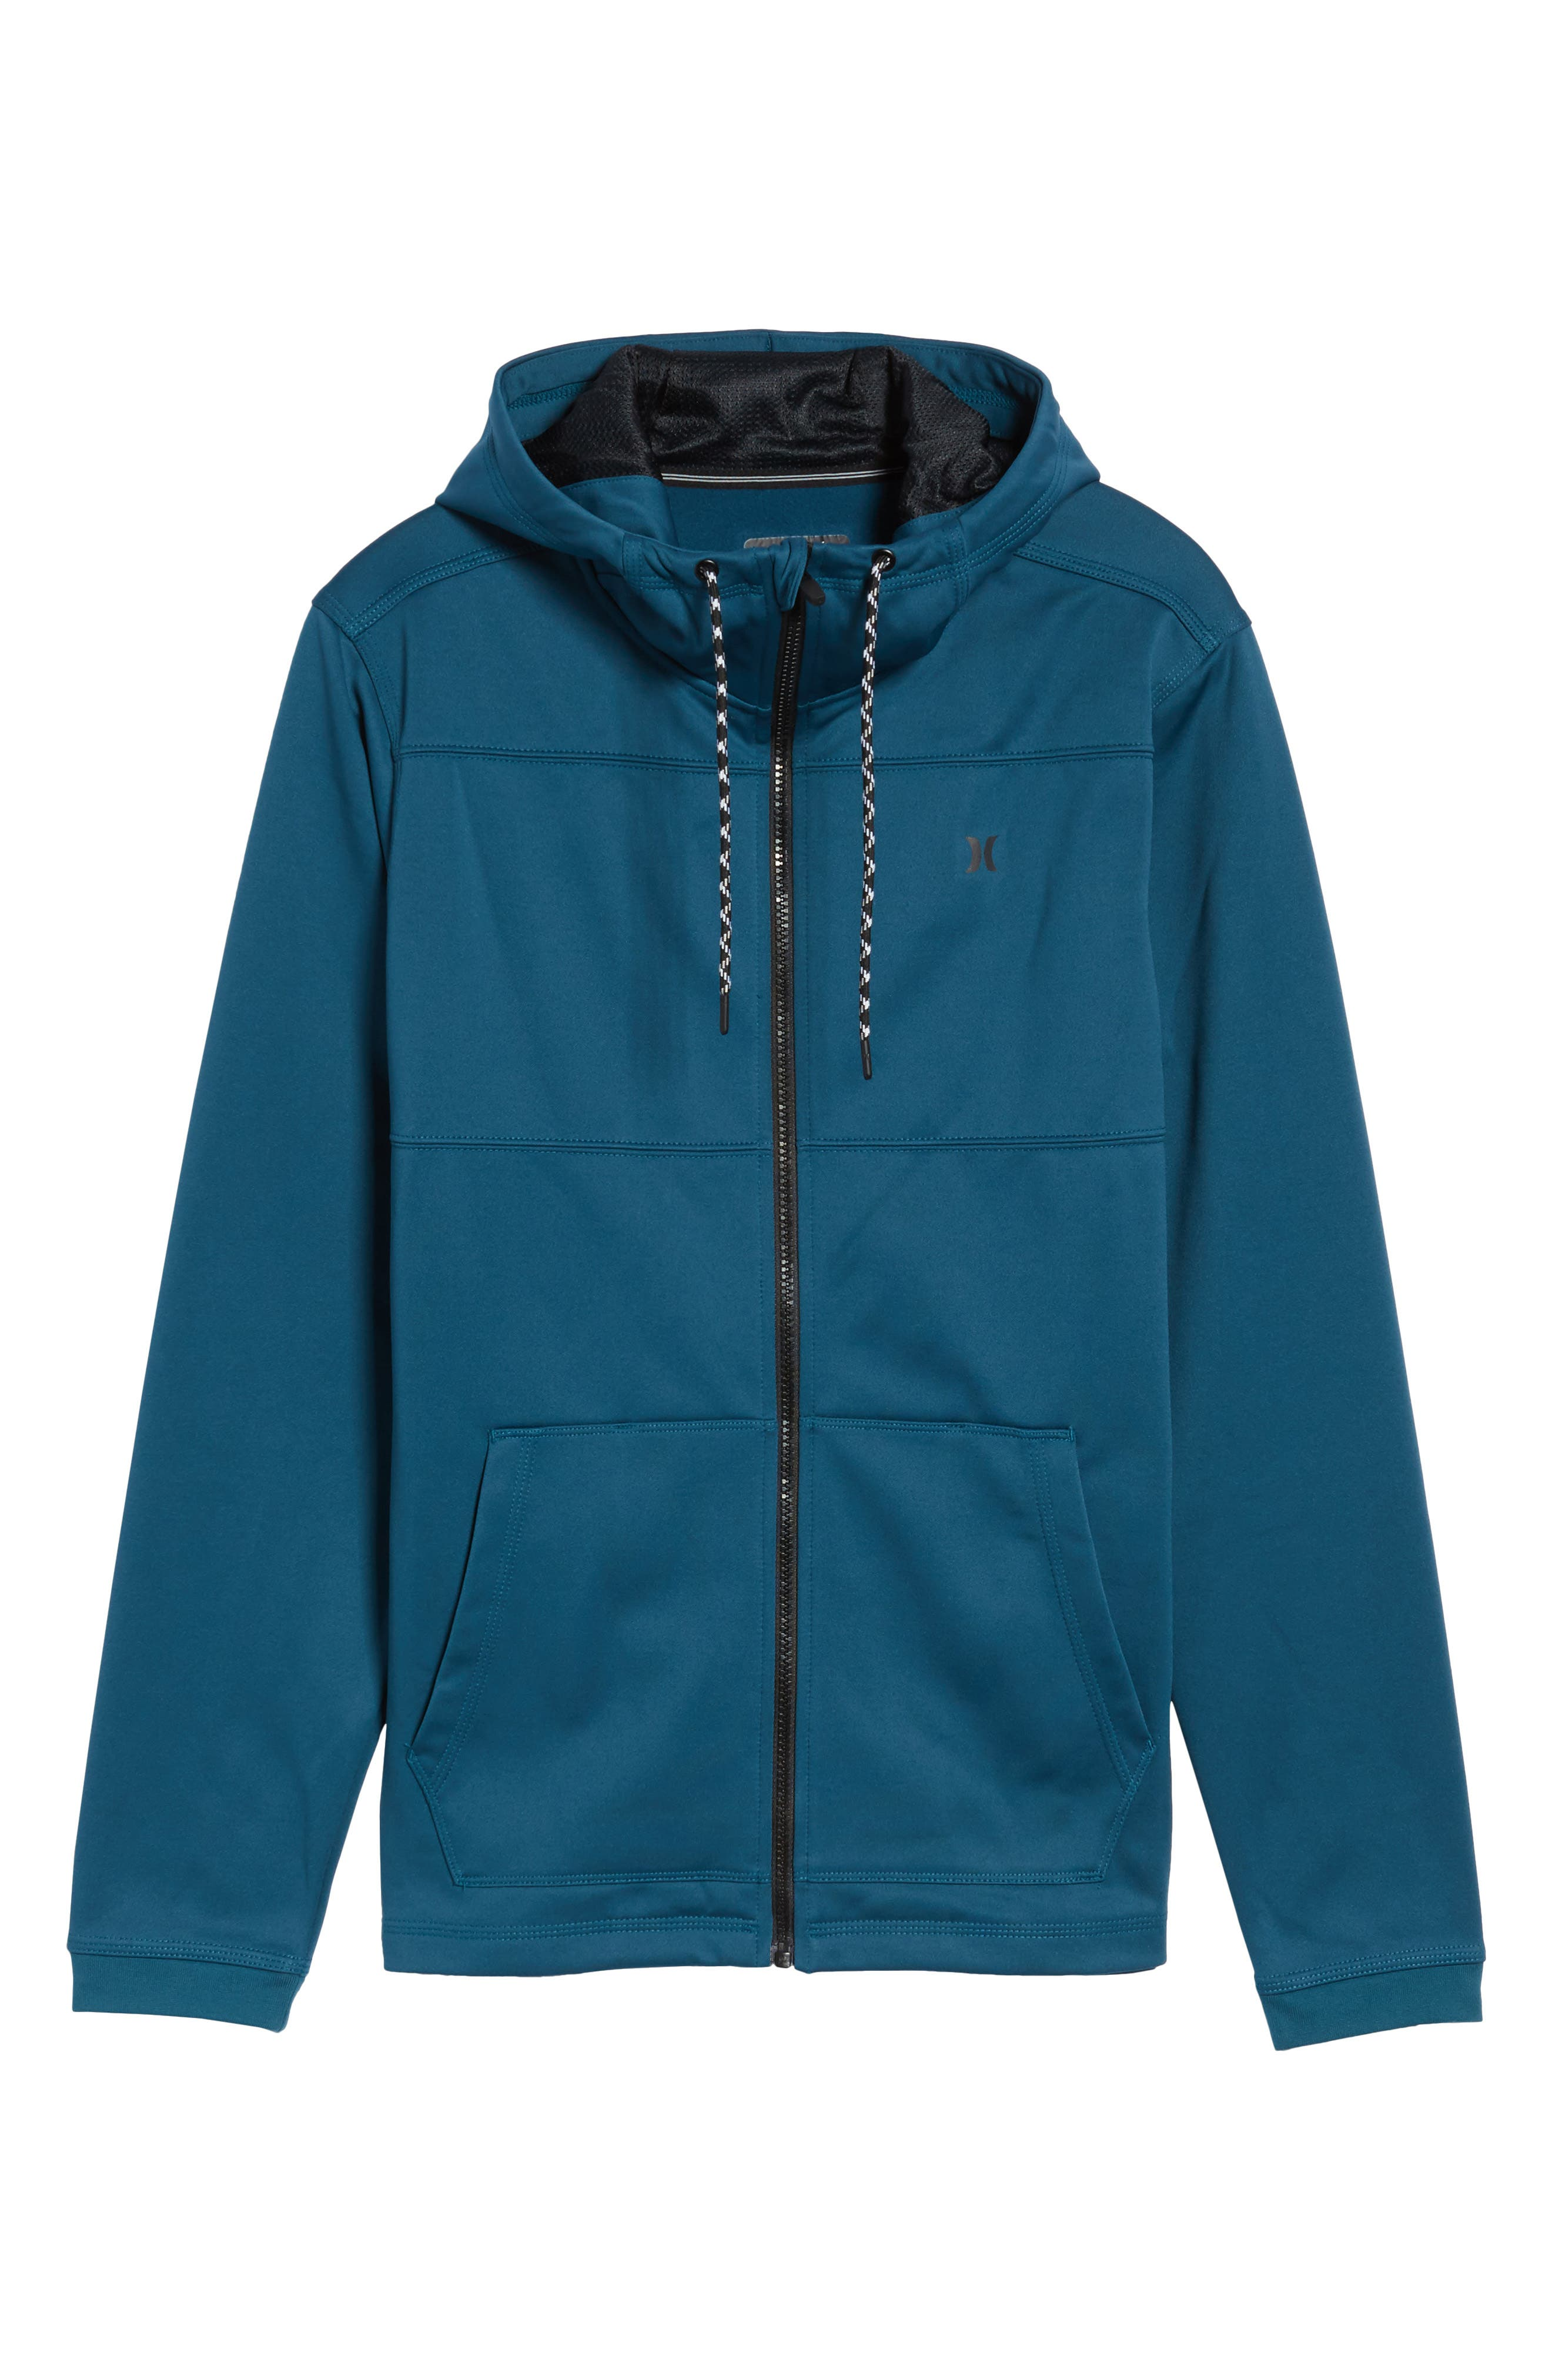 Therma Protect Zip Hoodie,                             Alternate thumbnail 6, color,                             Space Blue